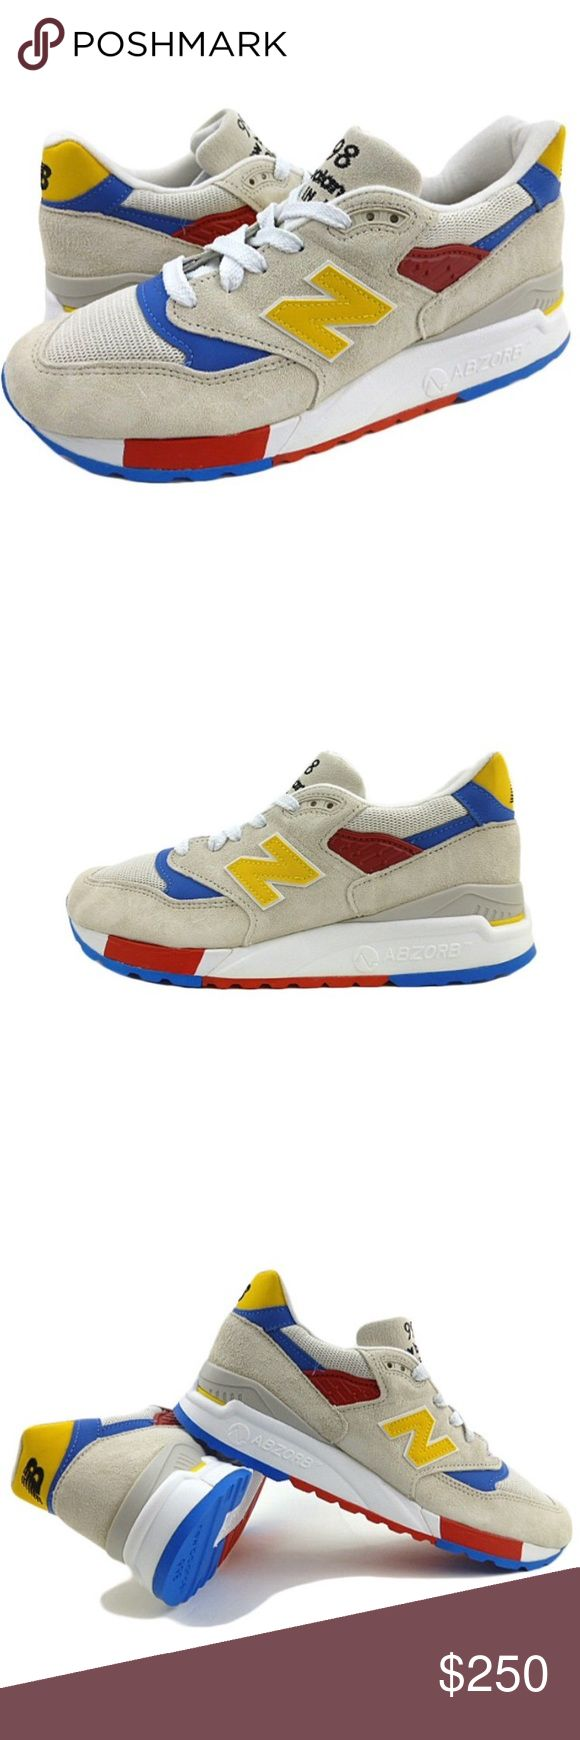 NEW BALANCE 998 J.CREW Collab Beachball Sz 8 Item: NEW BALANCE 998 J.CREW Collaboration Beachball Sz 8 Premium Suede M998JC8 Abzorb Retail $399 SIZE:  8 CONDITION:  Great condition New with tags No box 100% Authentic New Balance Shoes Athletic Shoes